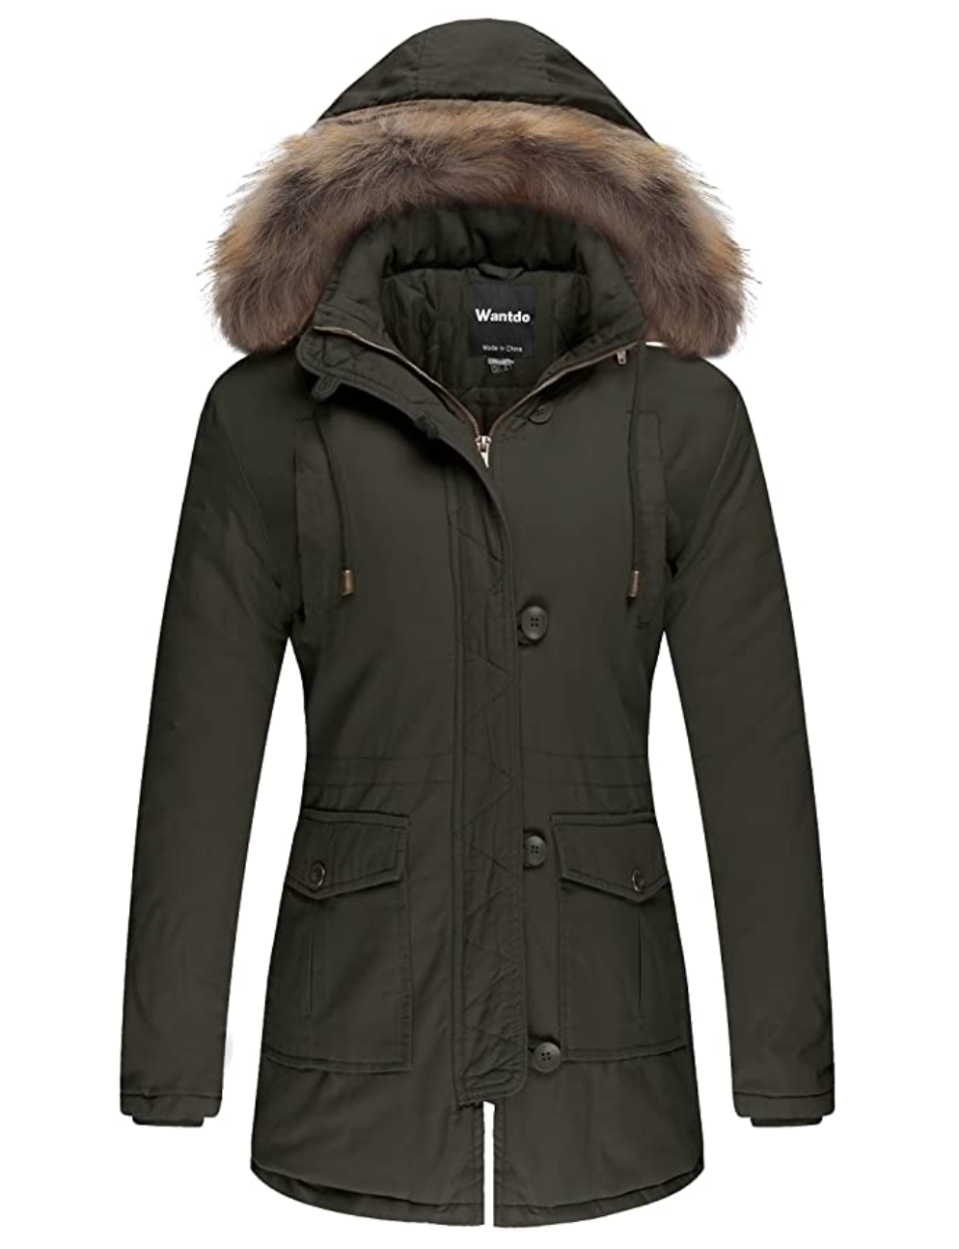 Wantdo Women's Winter Jacket Faux Fur Trim Parka Coat. Image via Amazon.